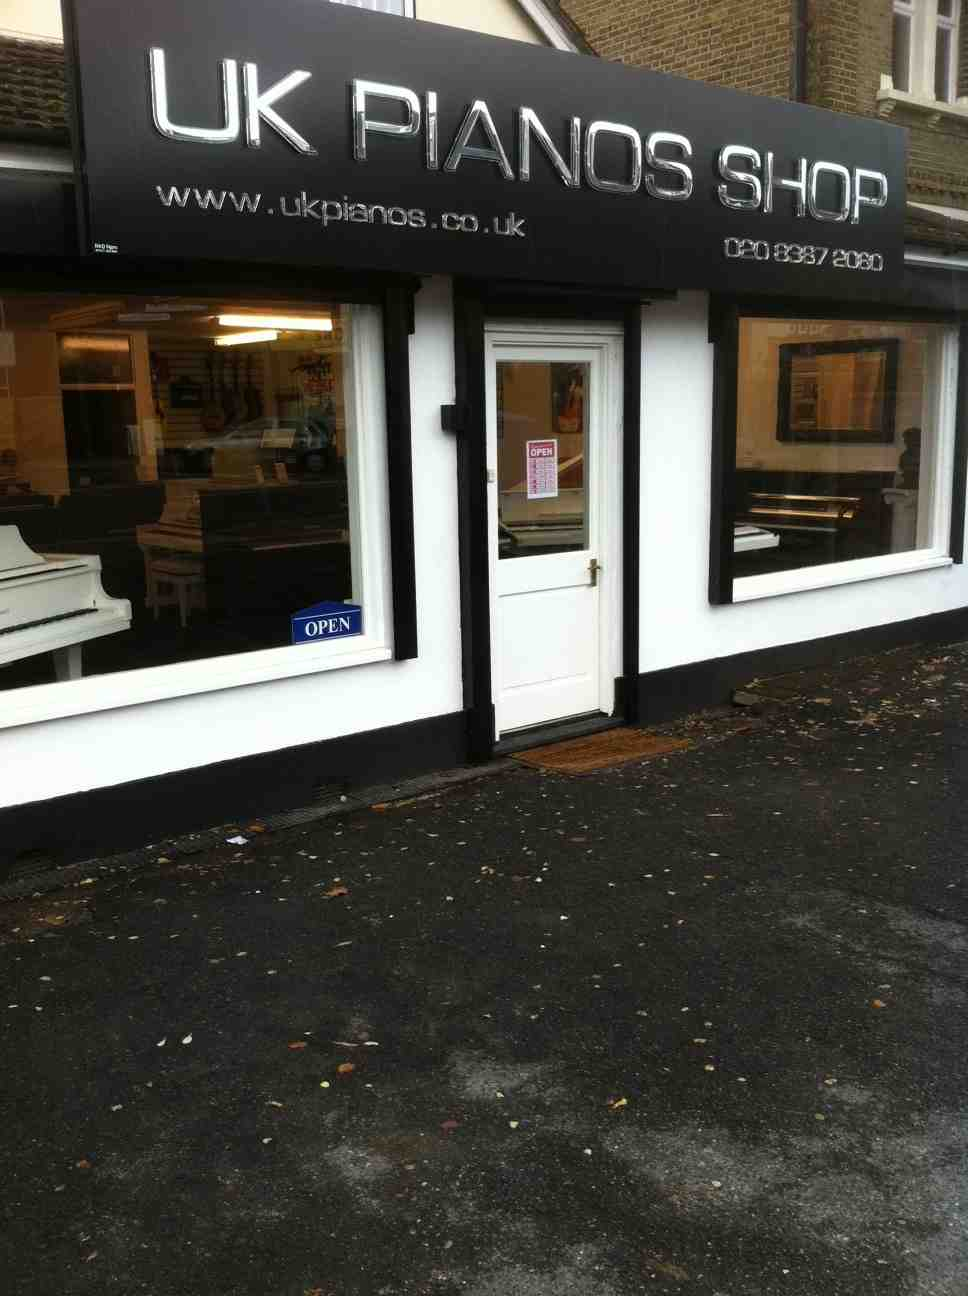 UK Piano Shop in Enfield, North London